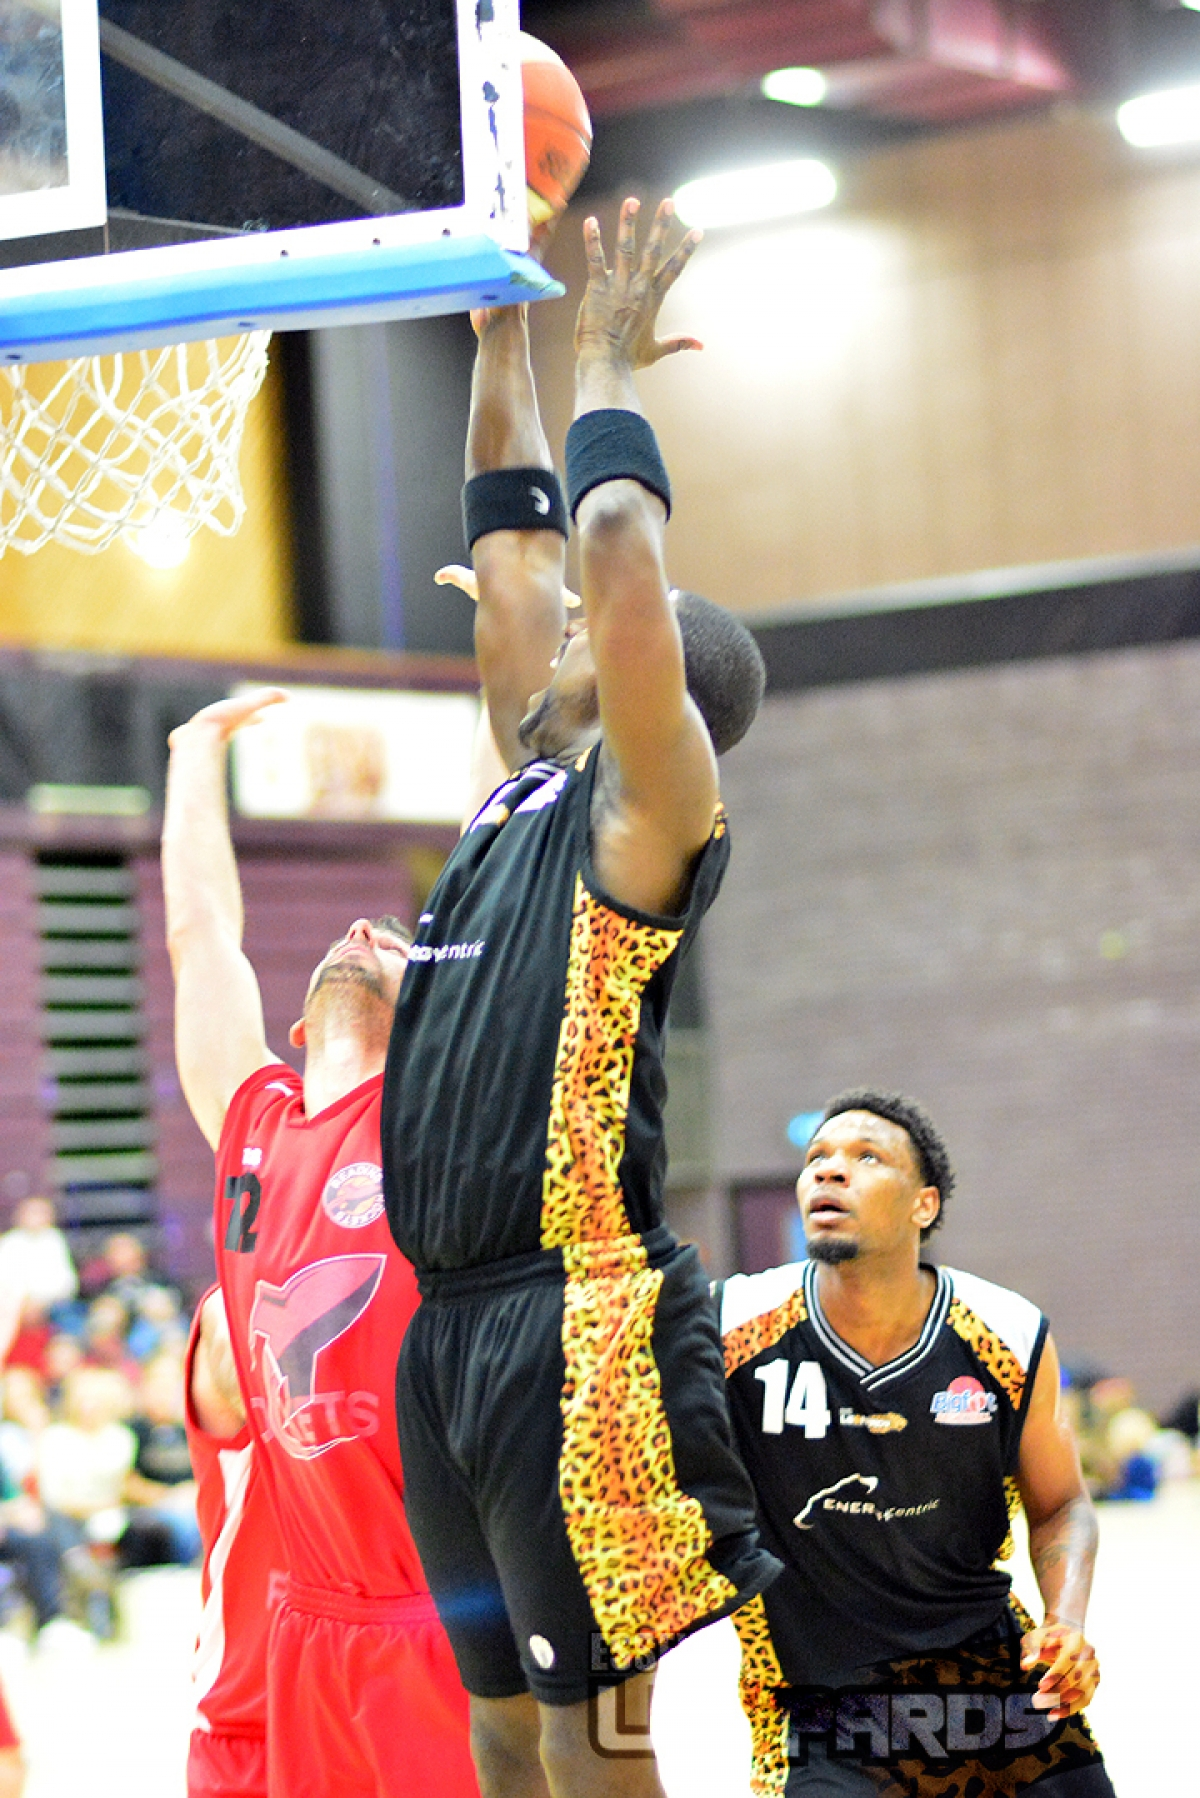 Robert Youngblood still fancies Essex Leopards for the title